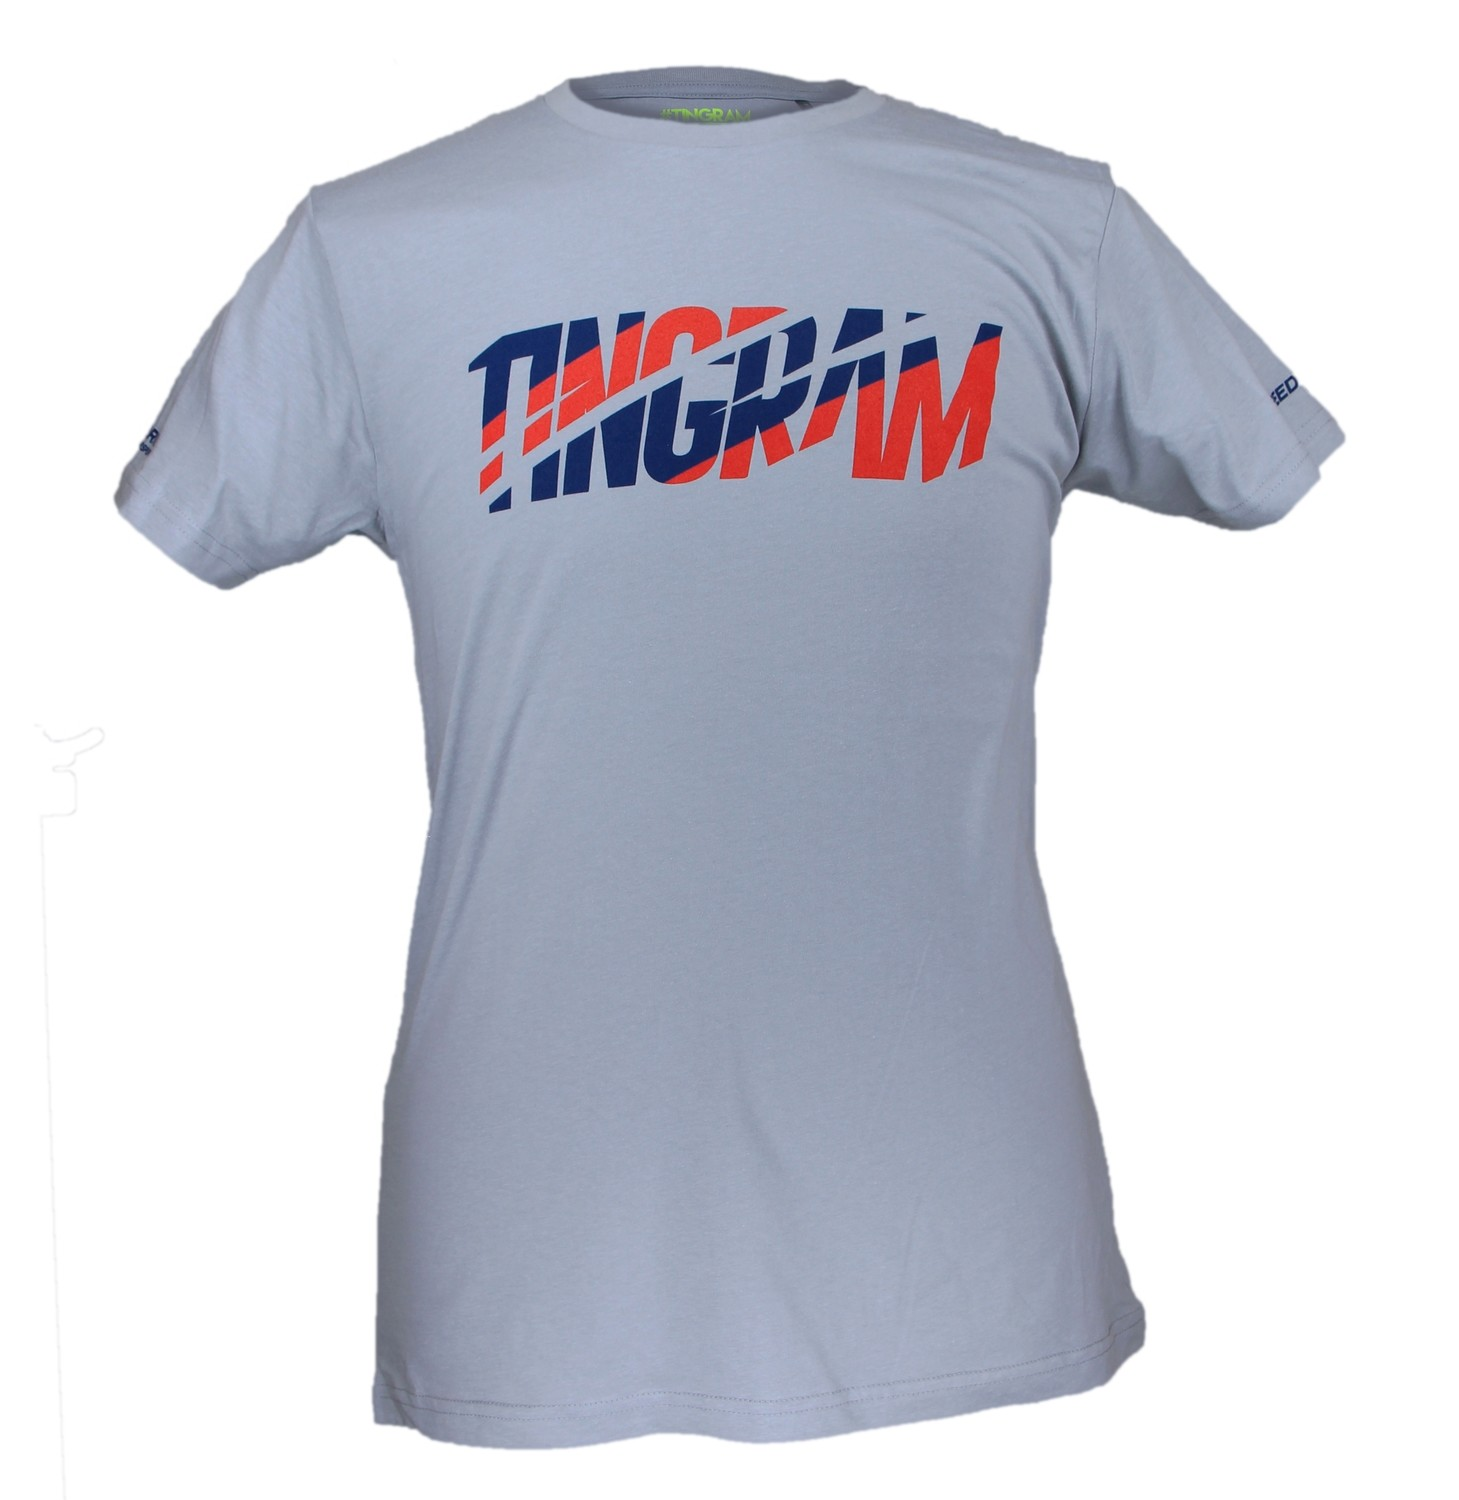 2019 #Tingram Light Grey Tshirt